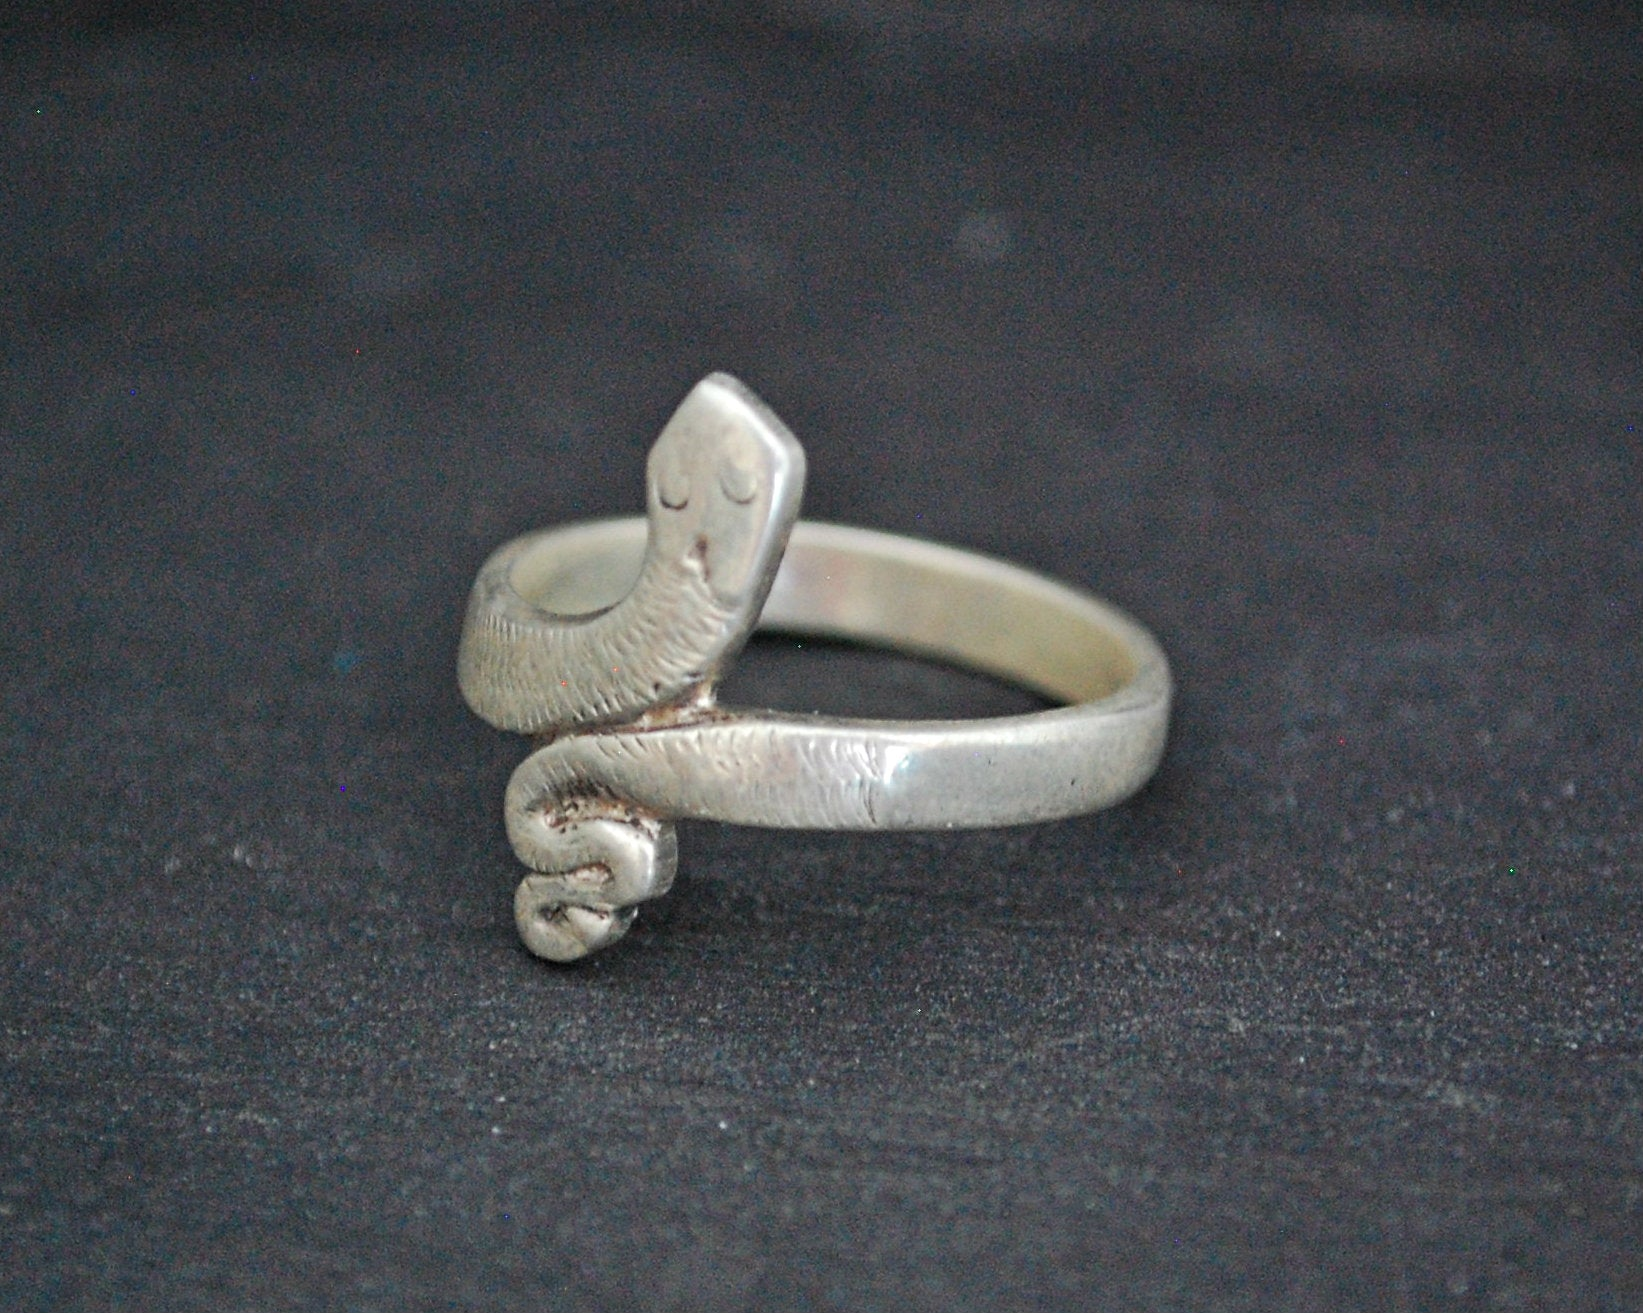 Snake Ring from India - Size 9.25